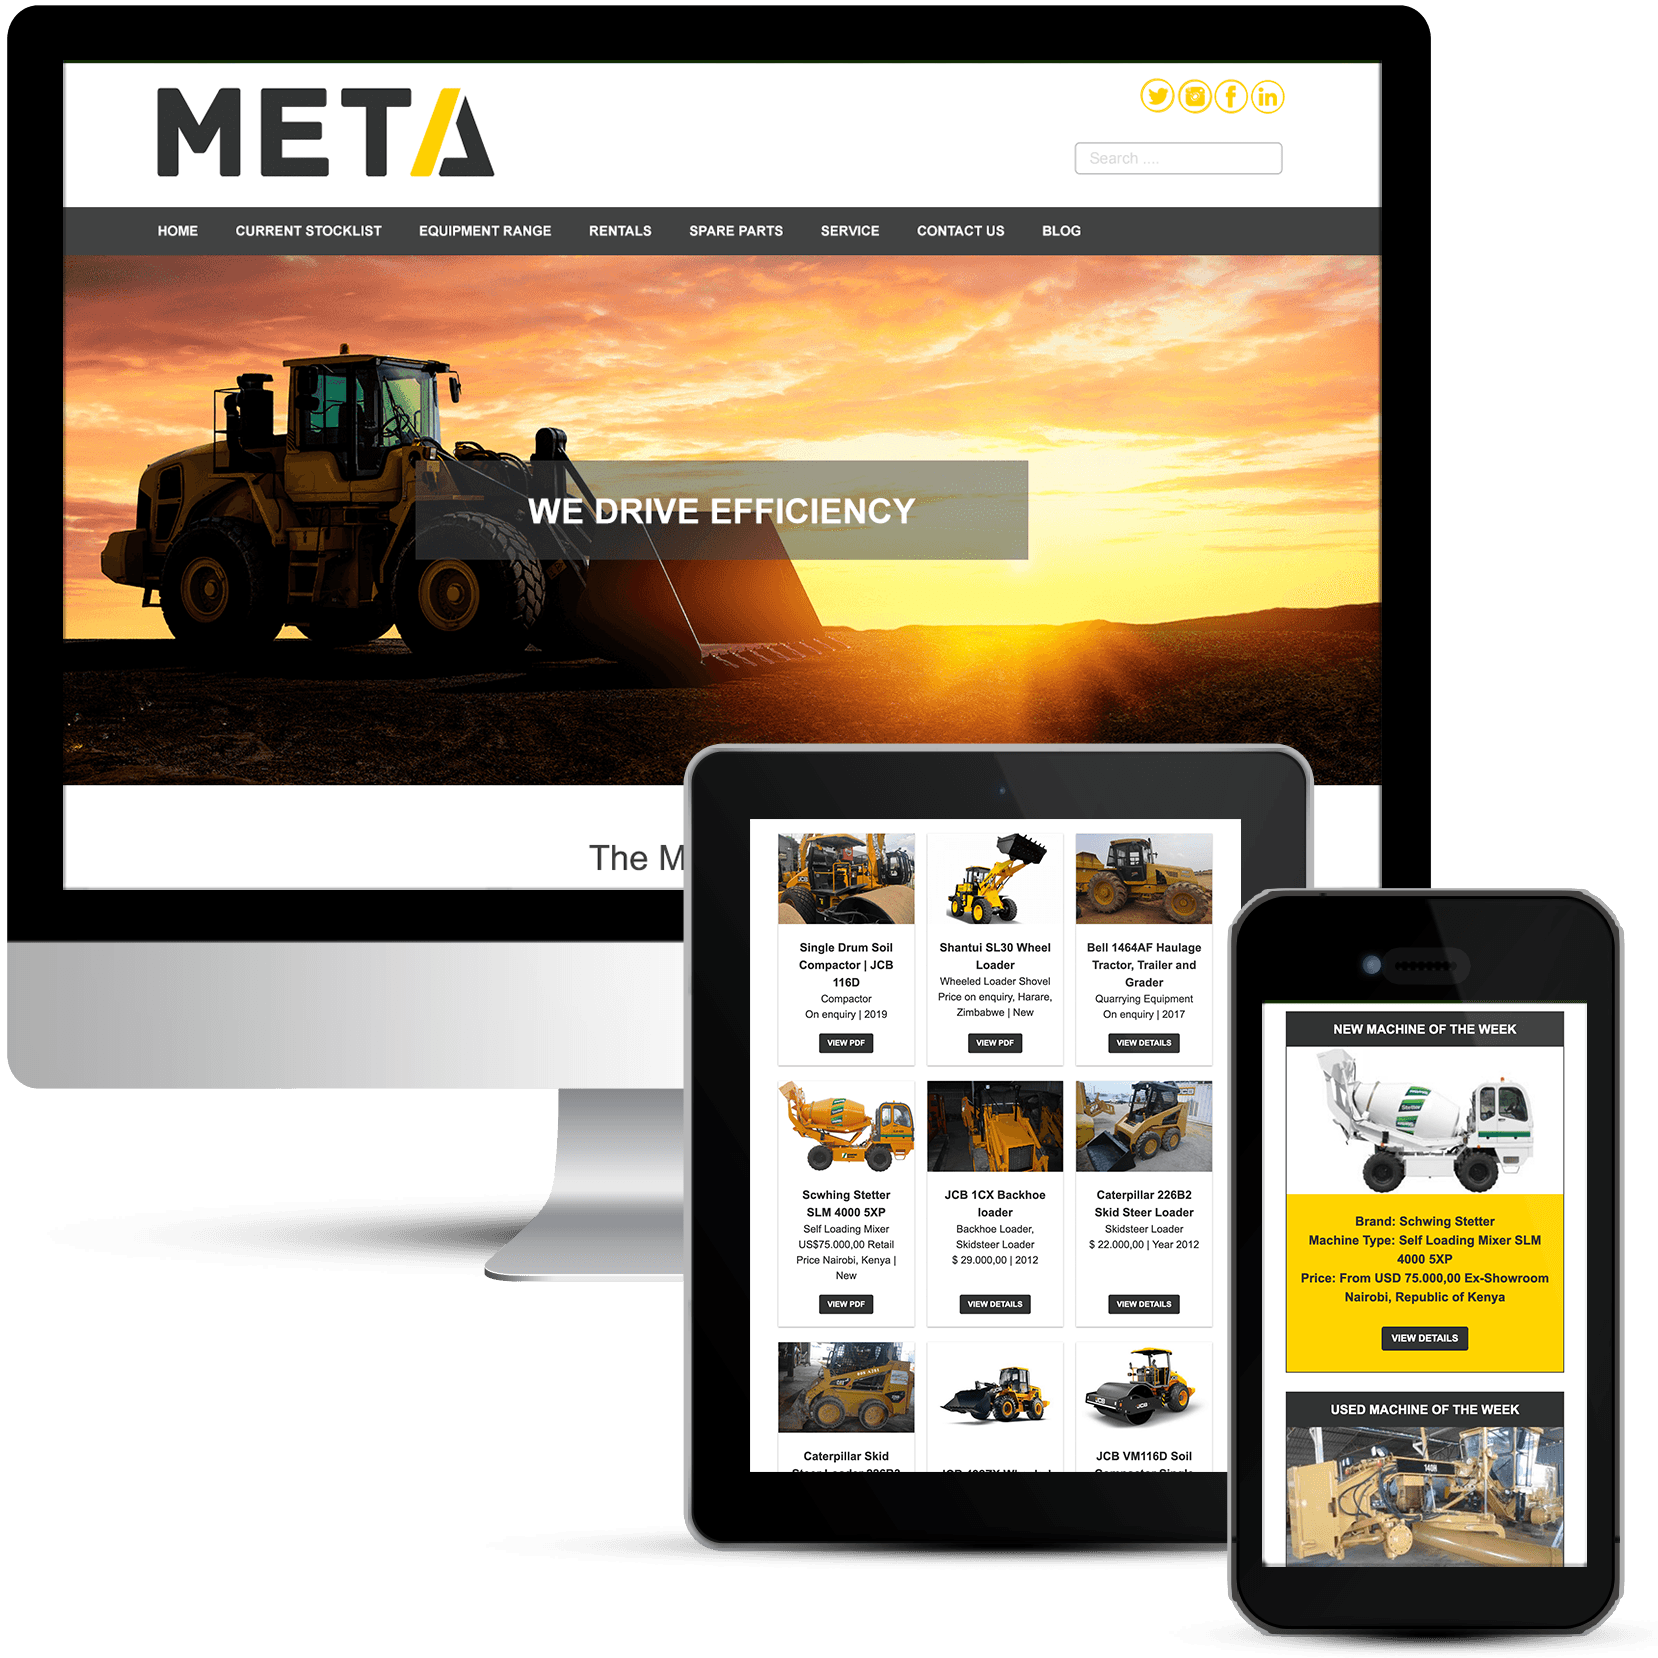 META Group Africa Machinery Sales Web Design